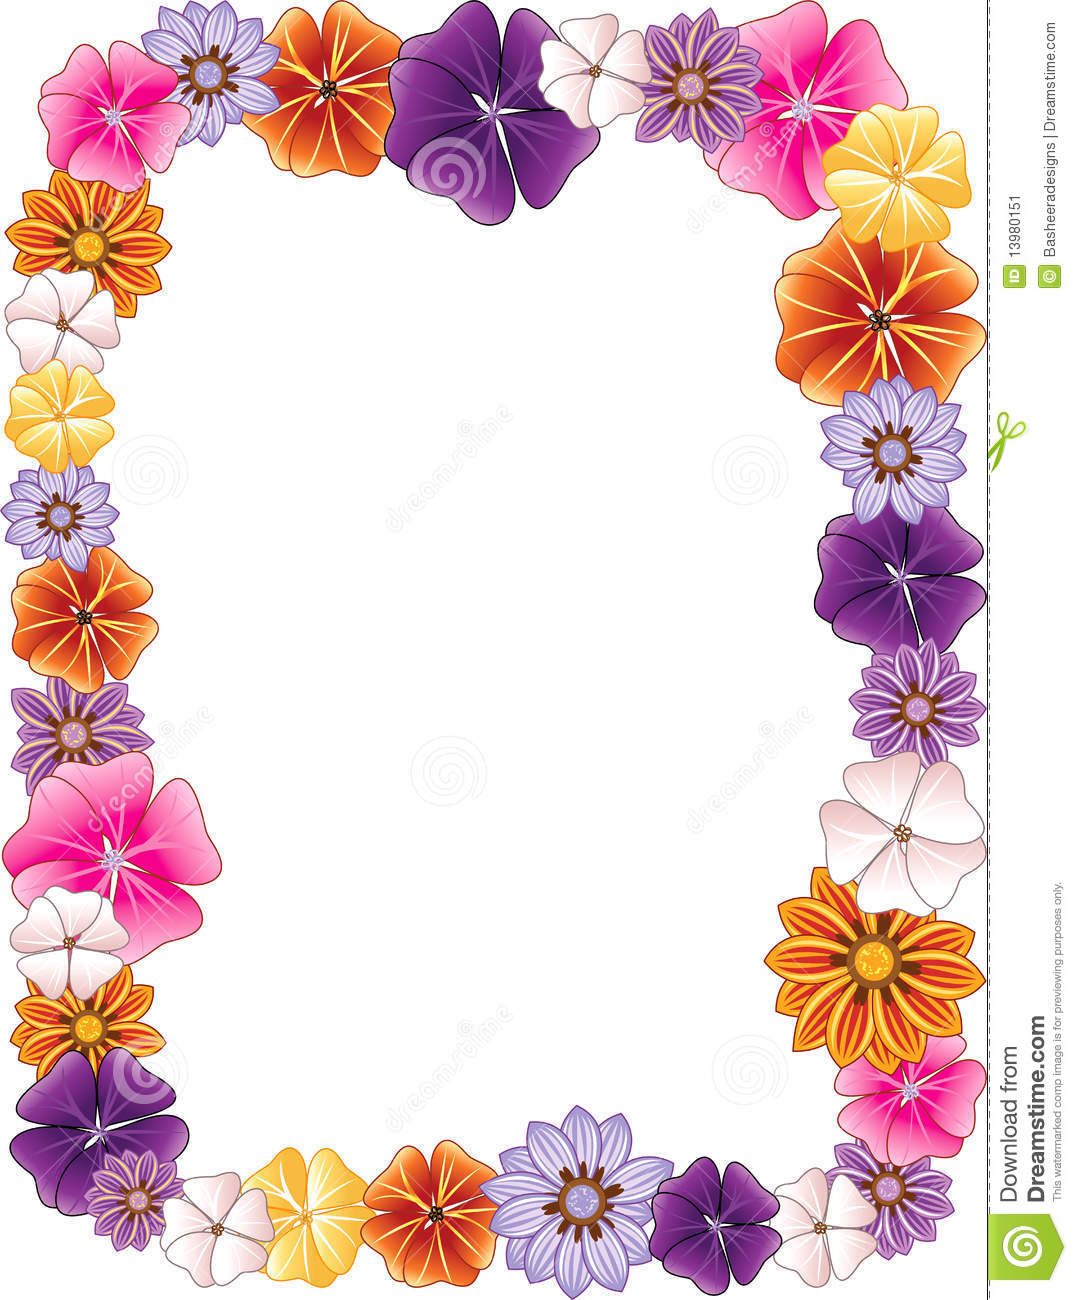 Hawaii flowers clipart free download best hawaii flowers clipart 1077x1300 flowers border clipart izmirmasajfo Images